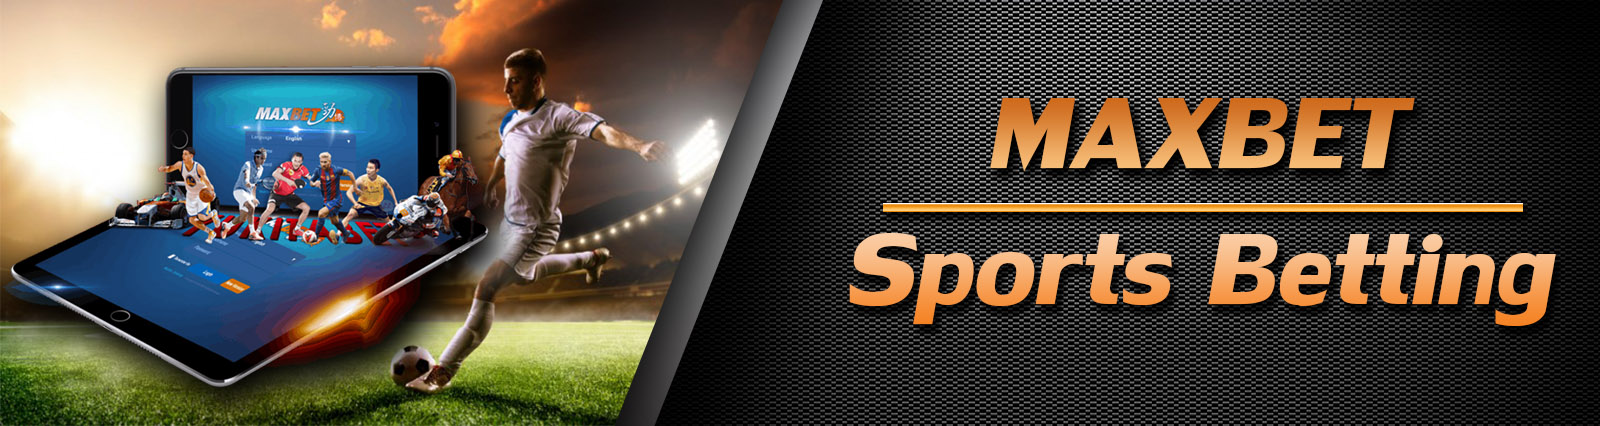 maxbet-website-sportsbetting-online